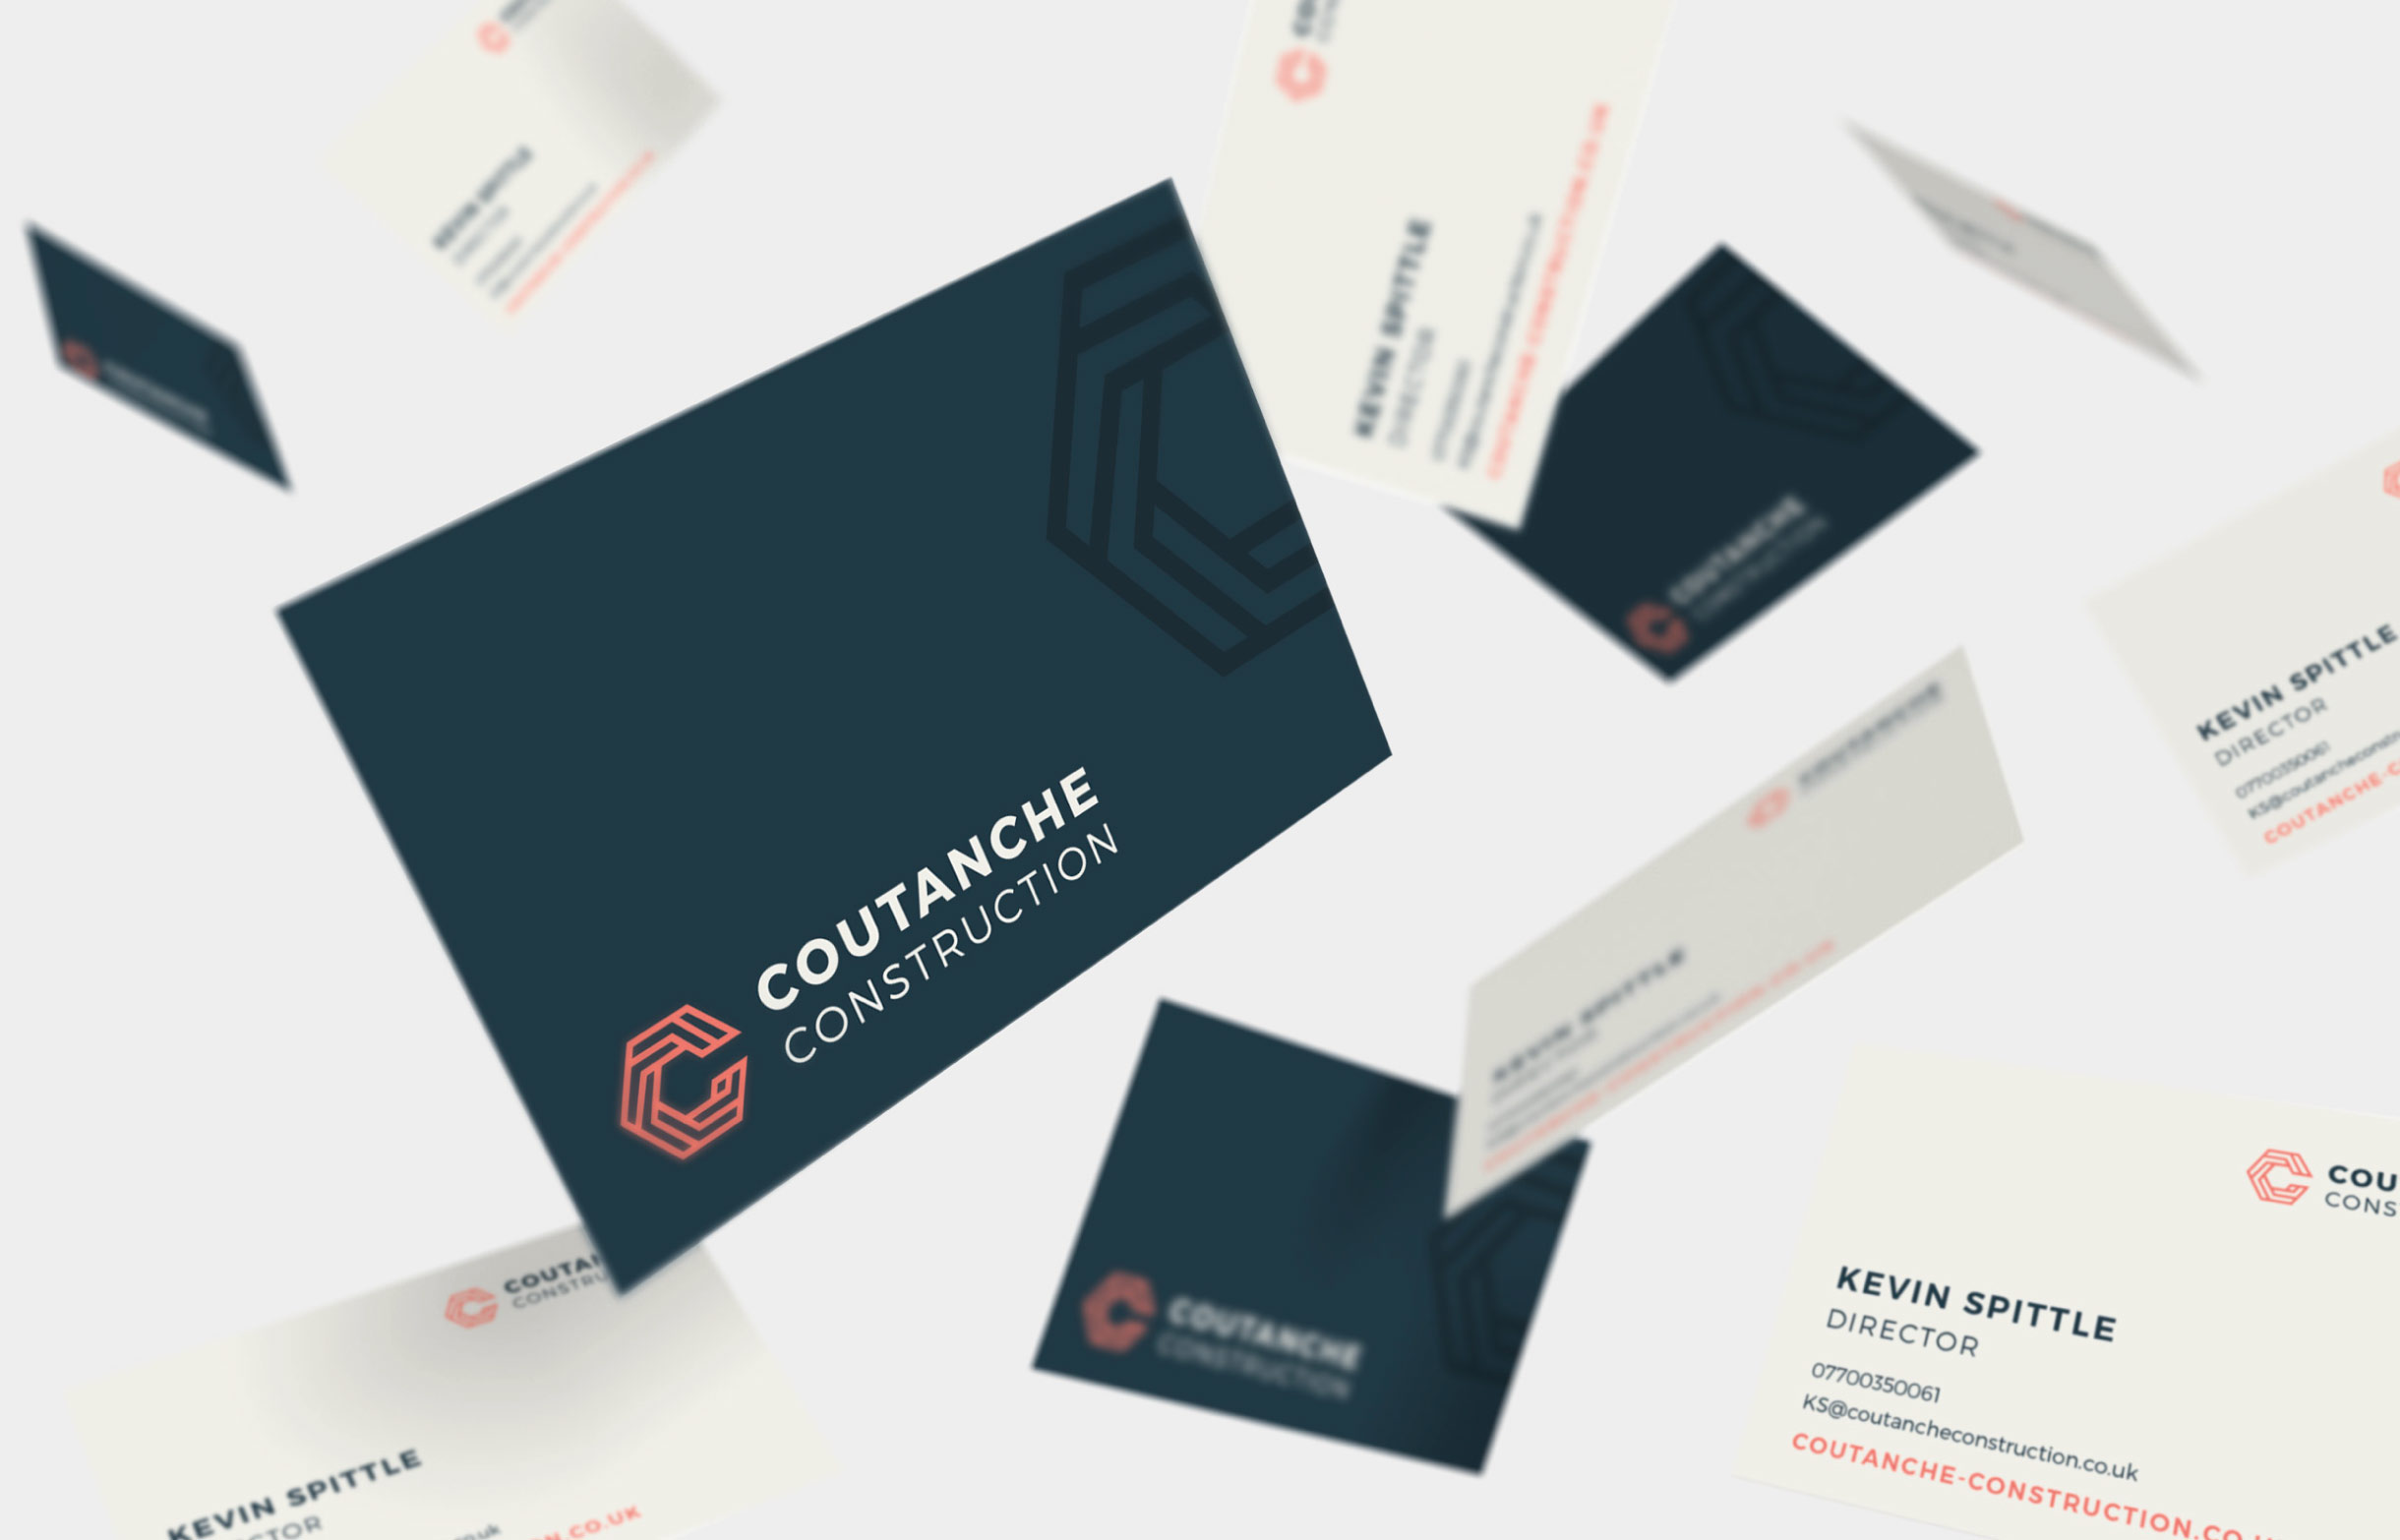 Quints Design co - Coutanche Construction Branding and Website Design